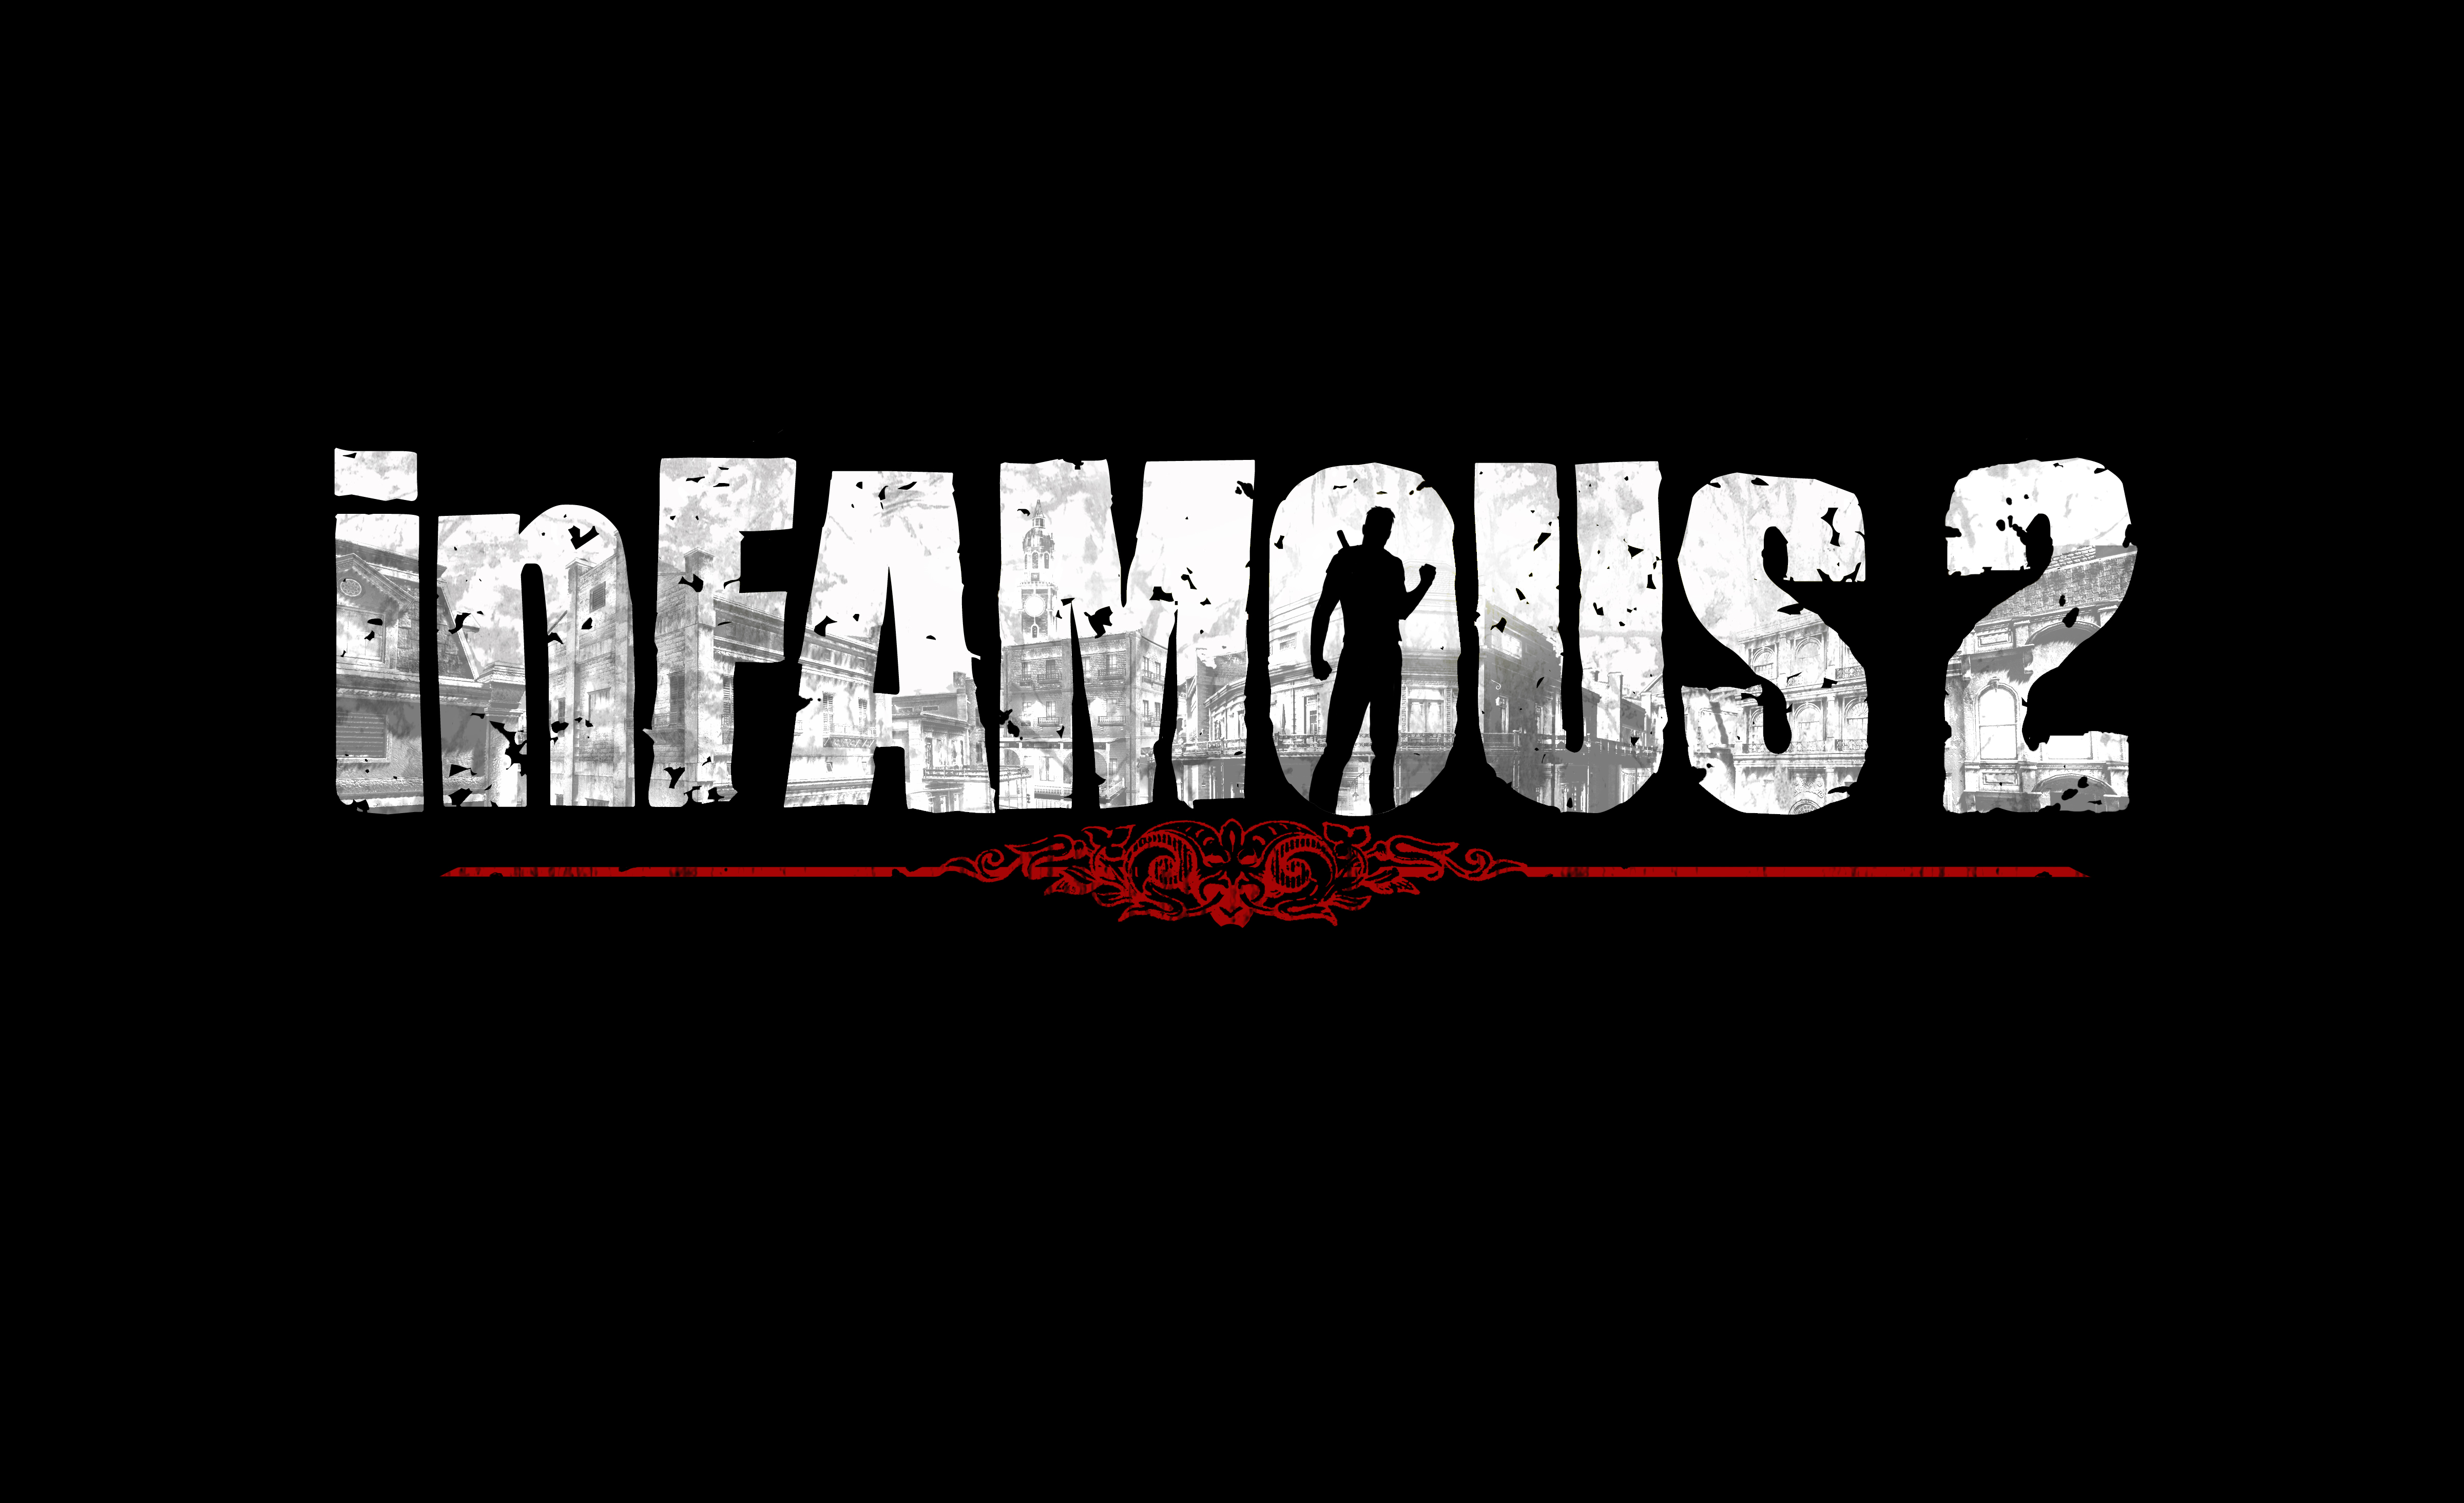 HQ InFAMOUS 2 Wallpapers   File 2058.64Kb